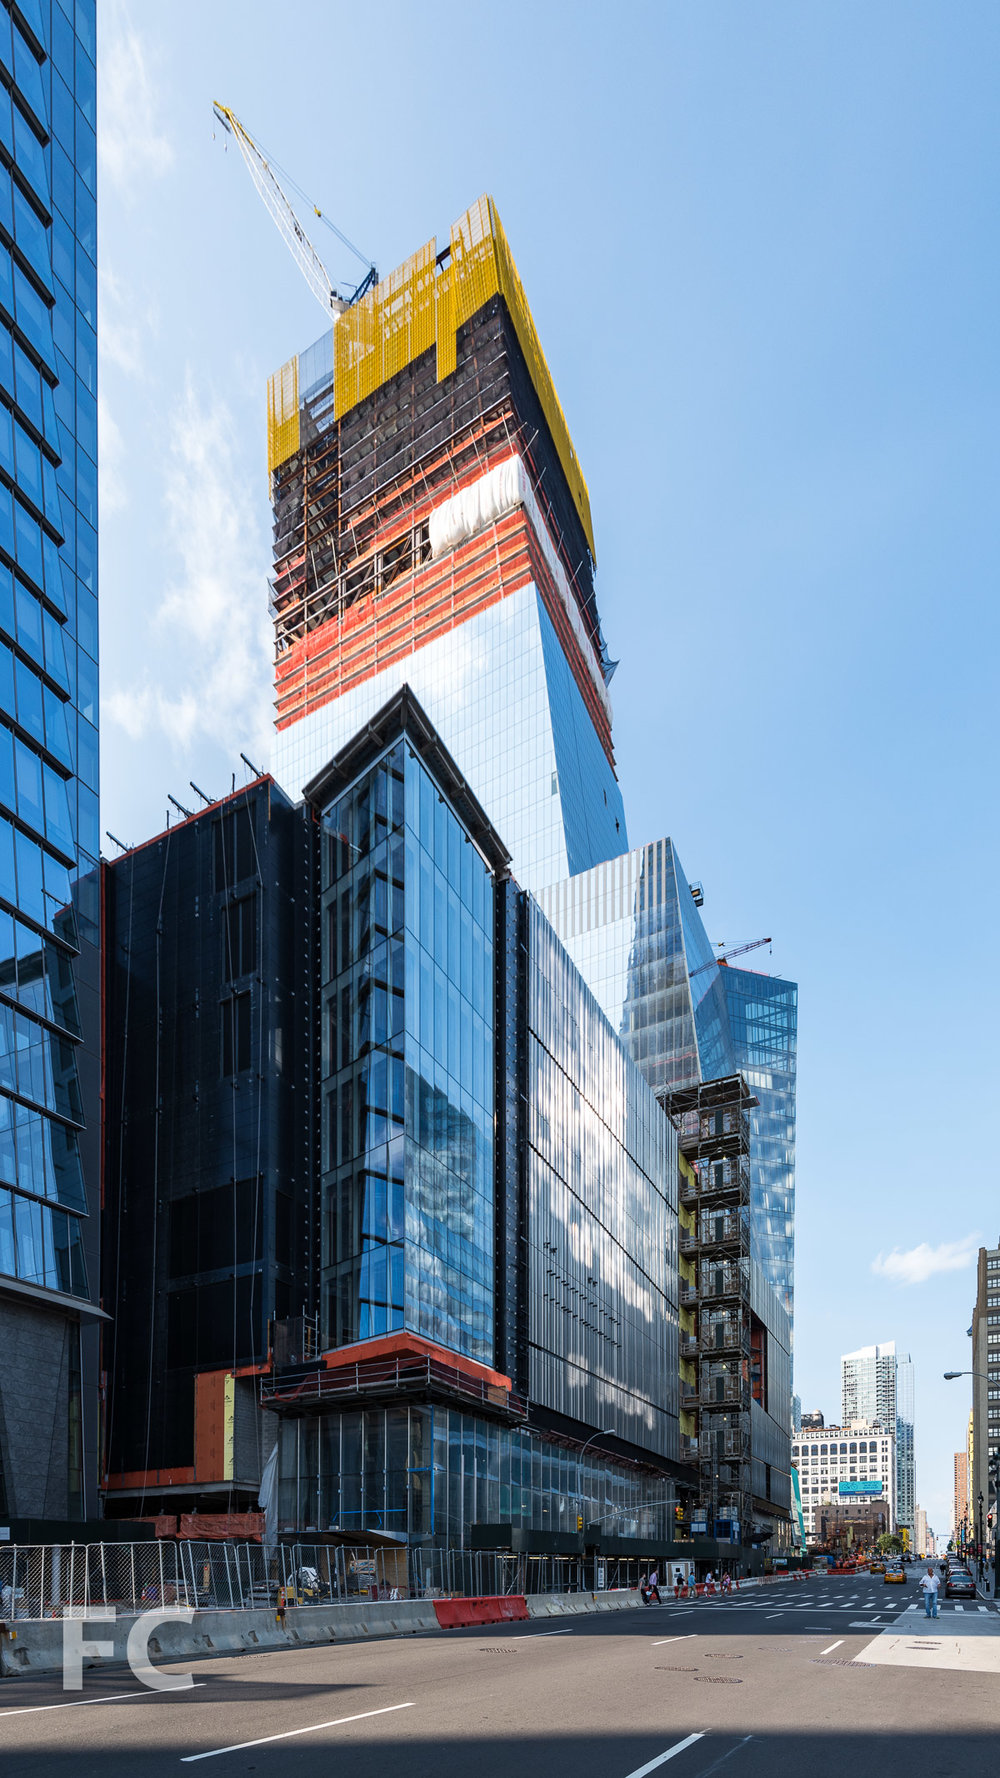 Hudson Yards retail podium (foreground) and 30 Hudson Yards (background).